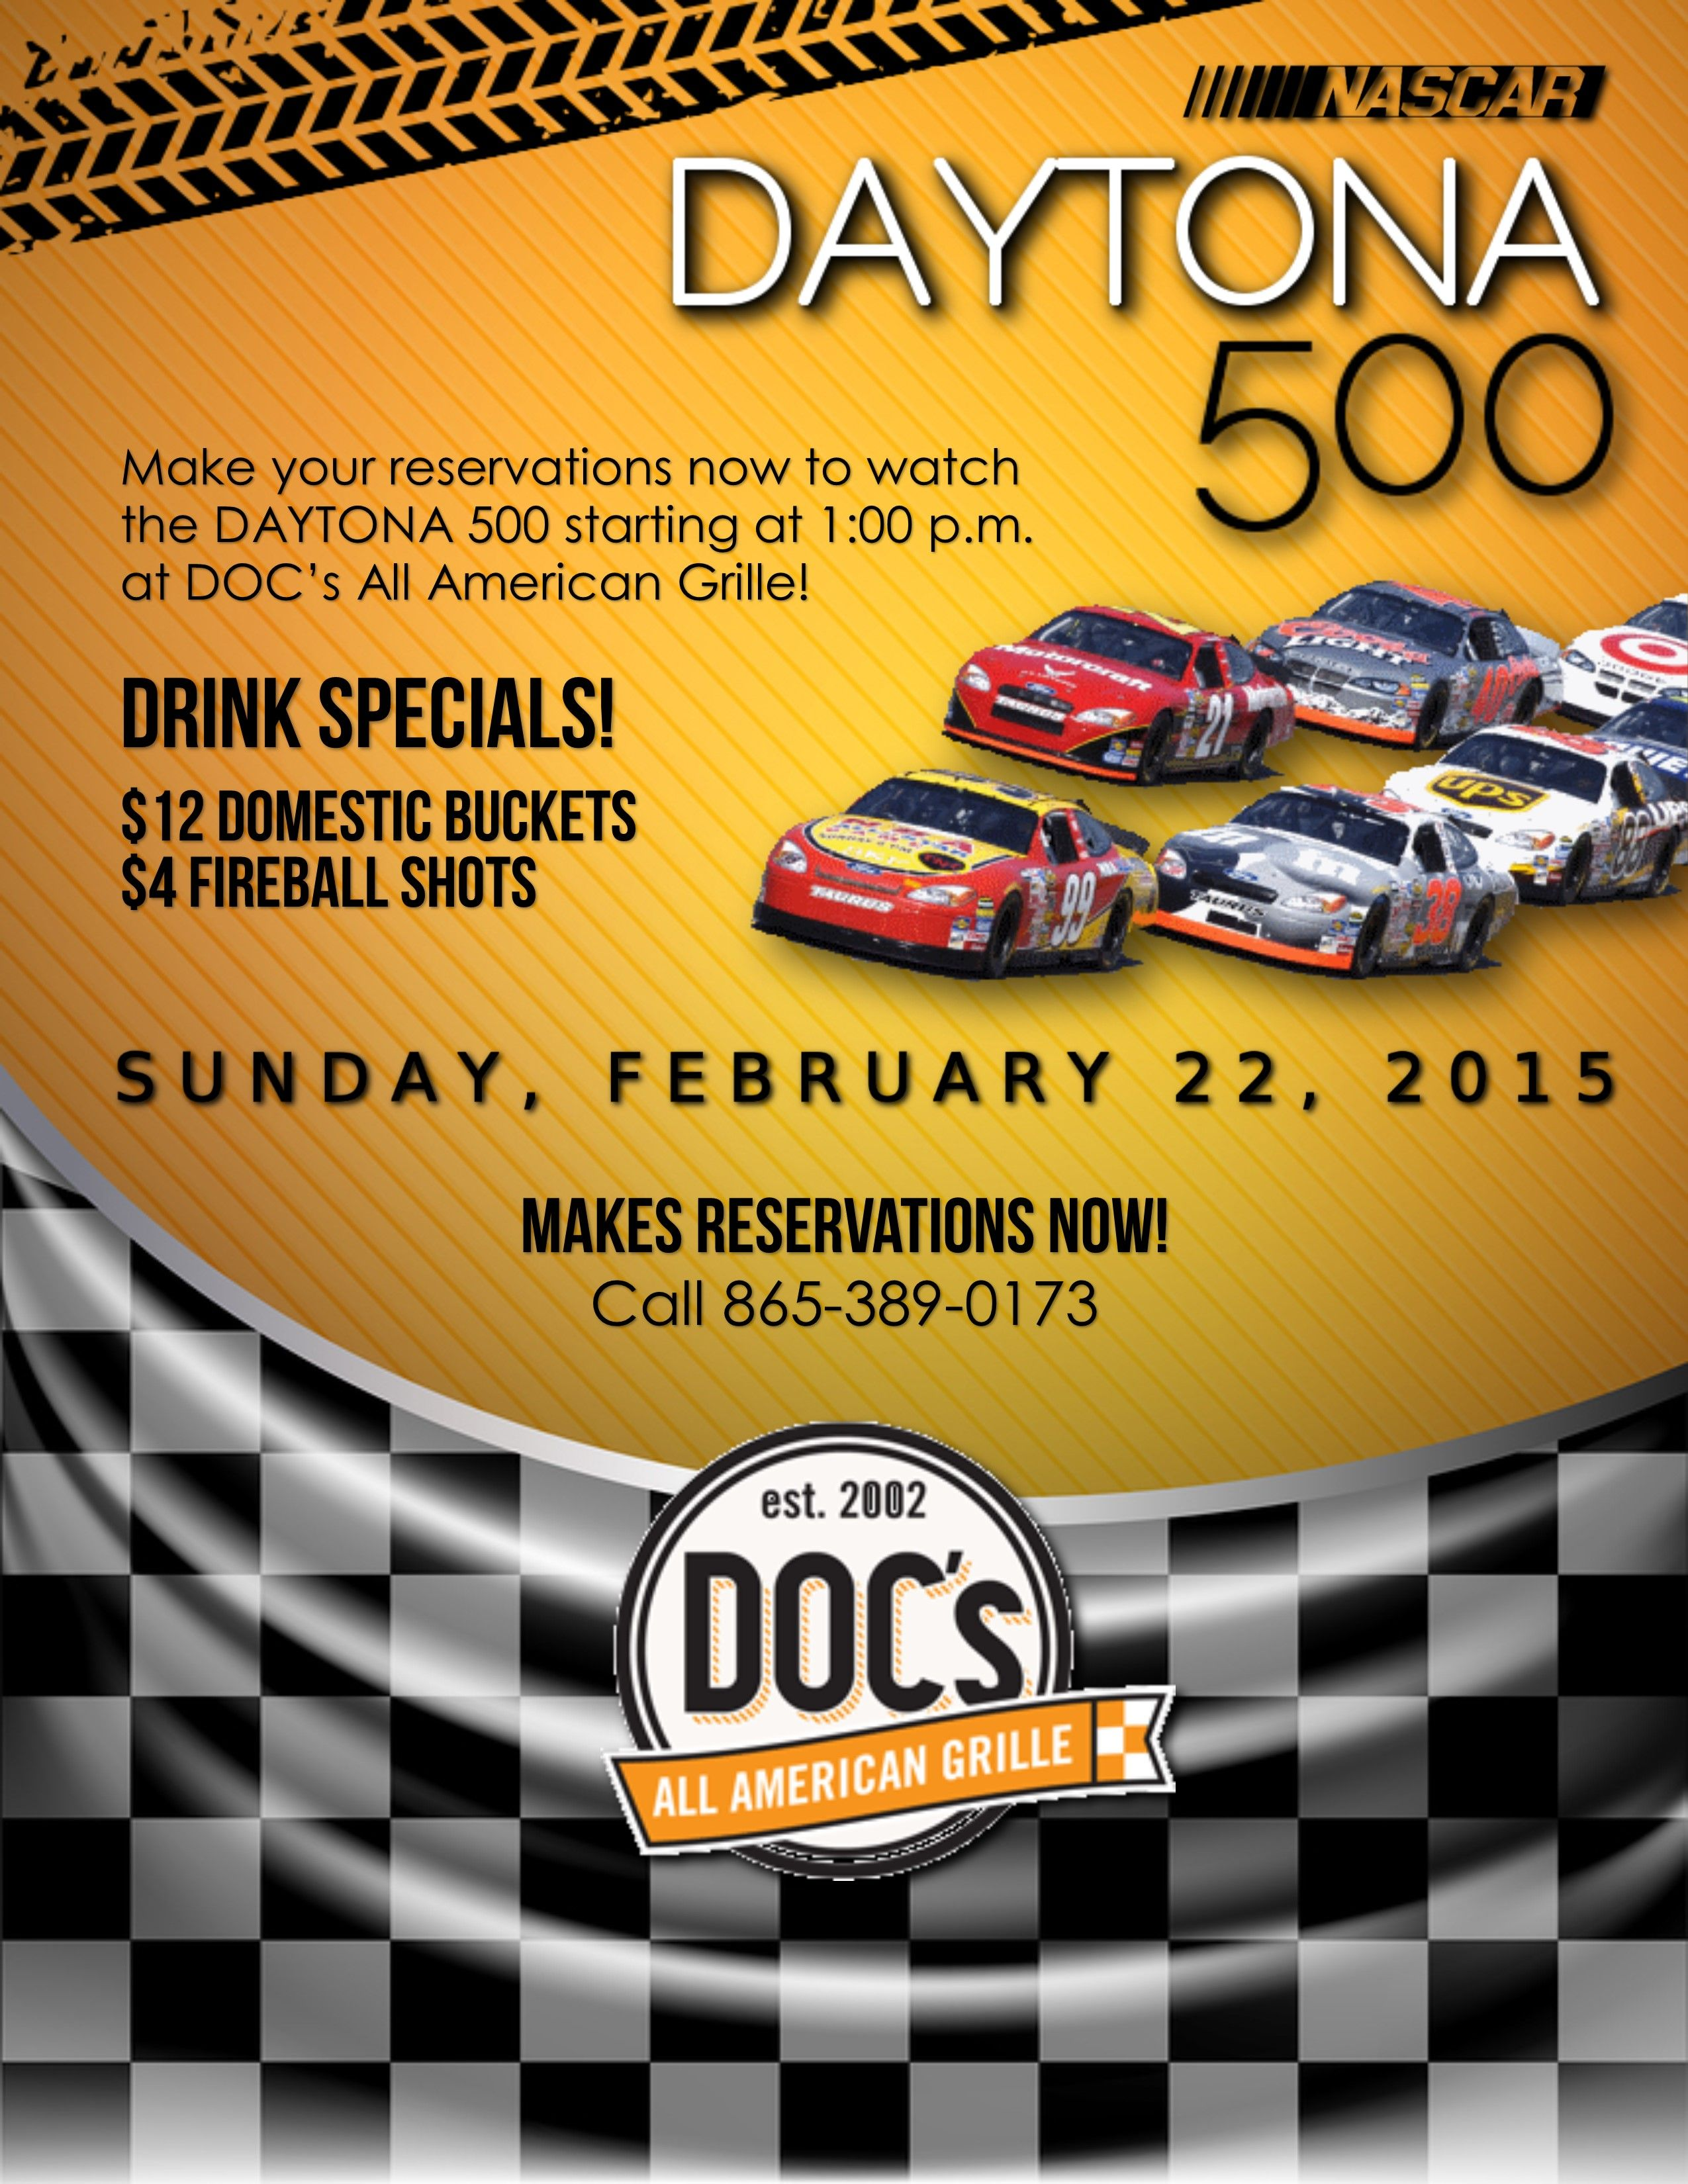 Daytona 500 flyer for DOC s All American Grille